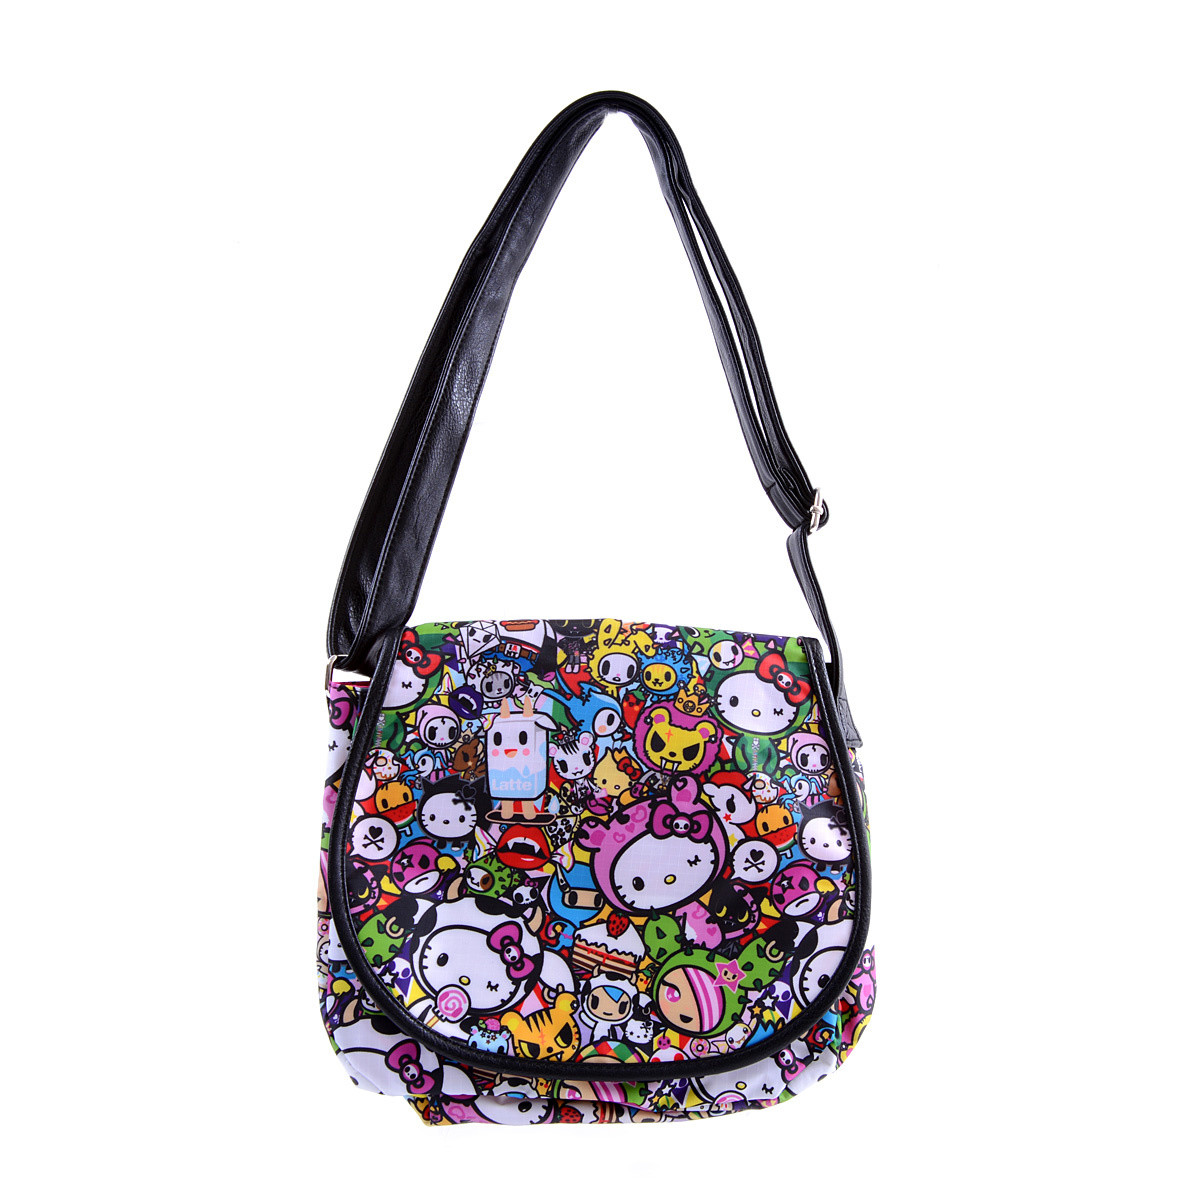 231f3decbb6b Hello Kitty x tokidoki Crossbody Bag